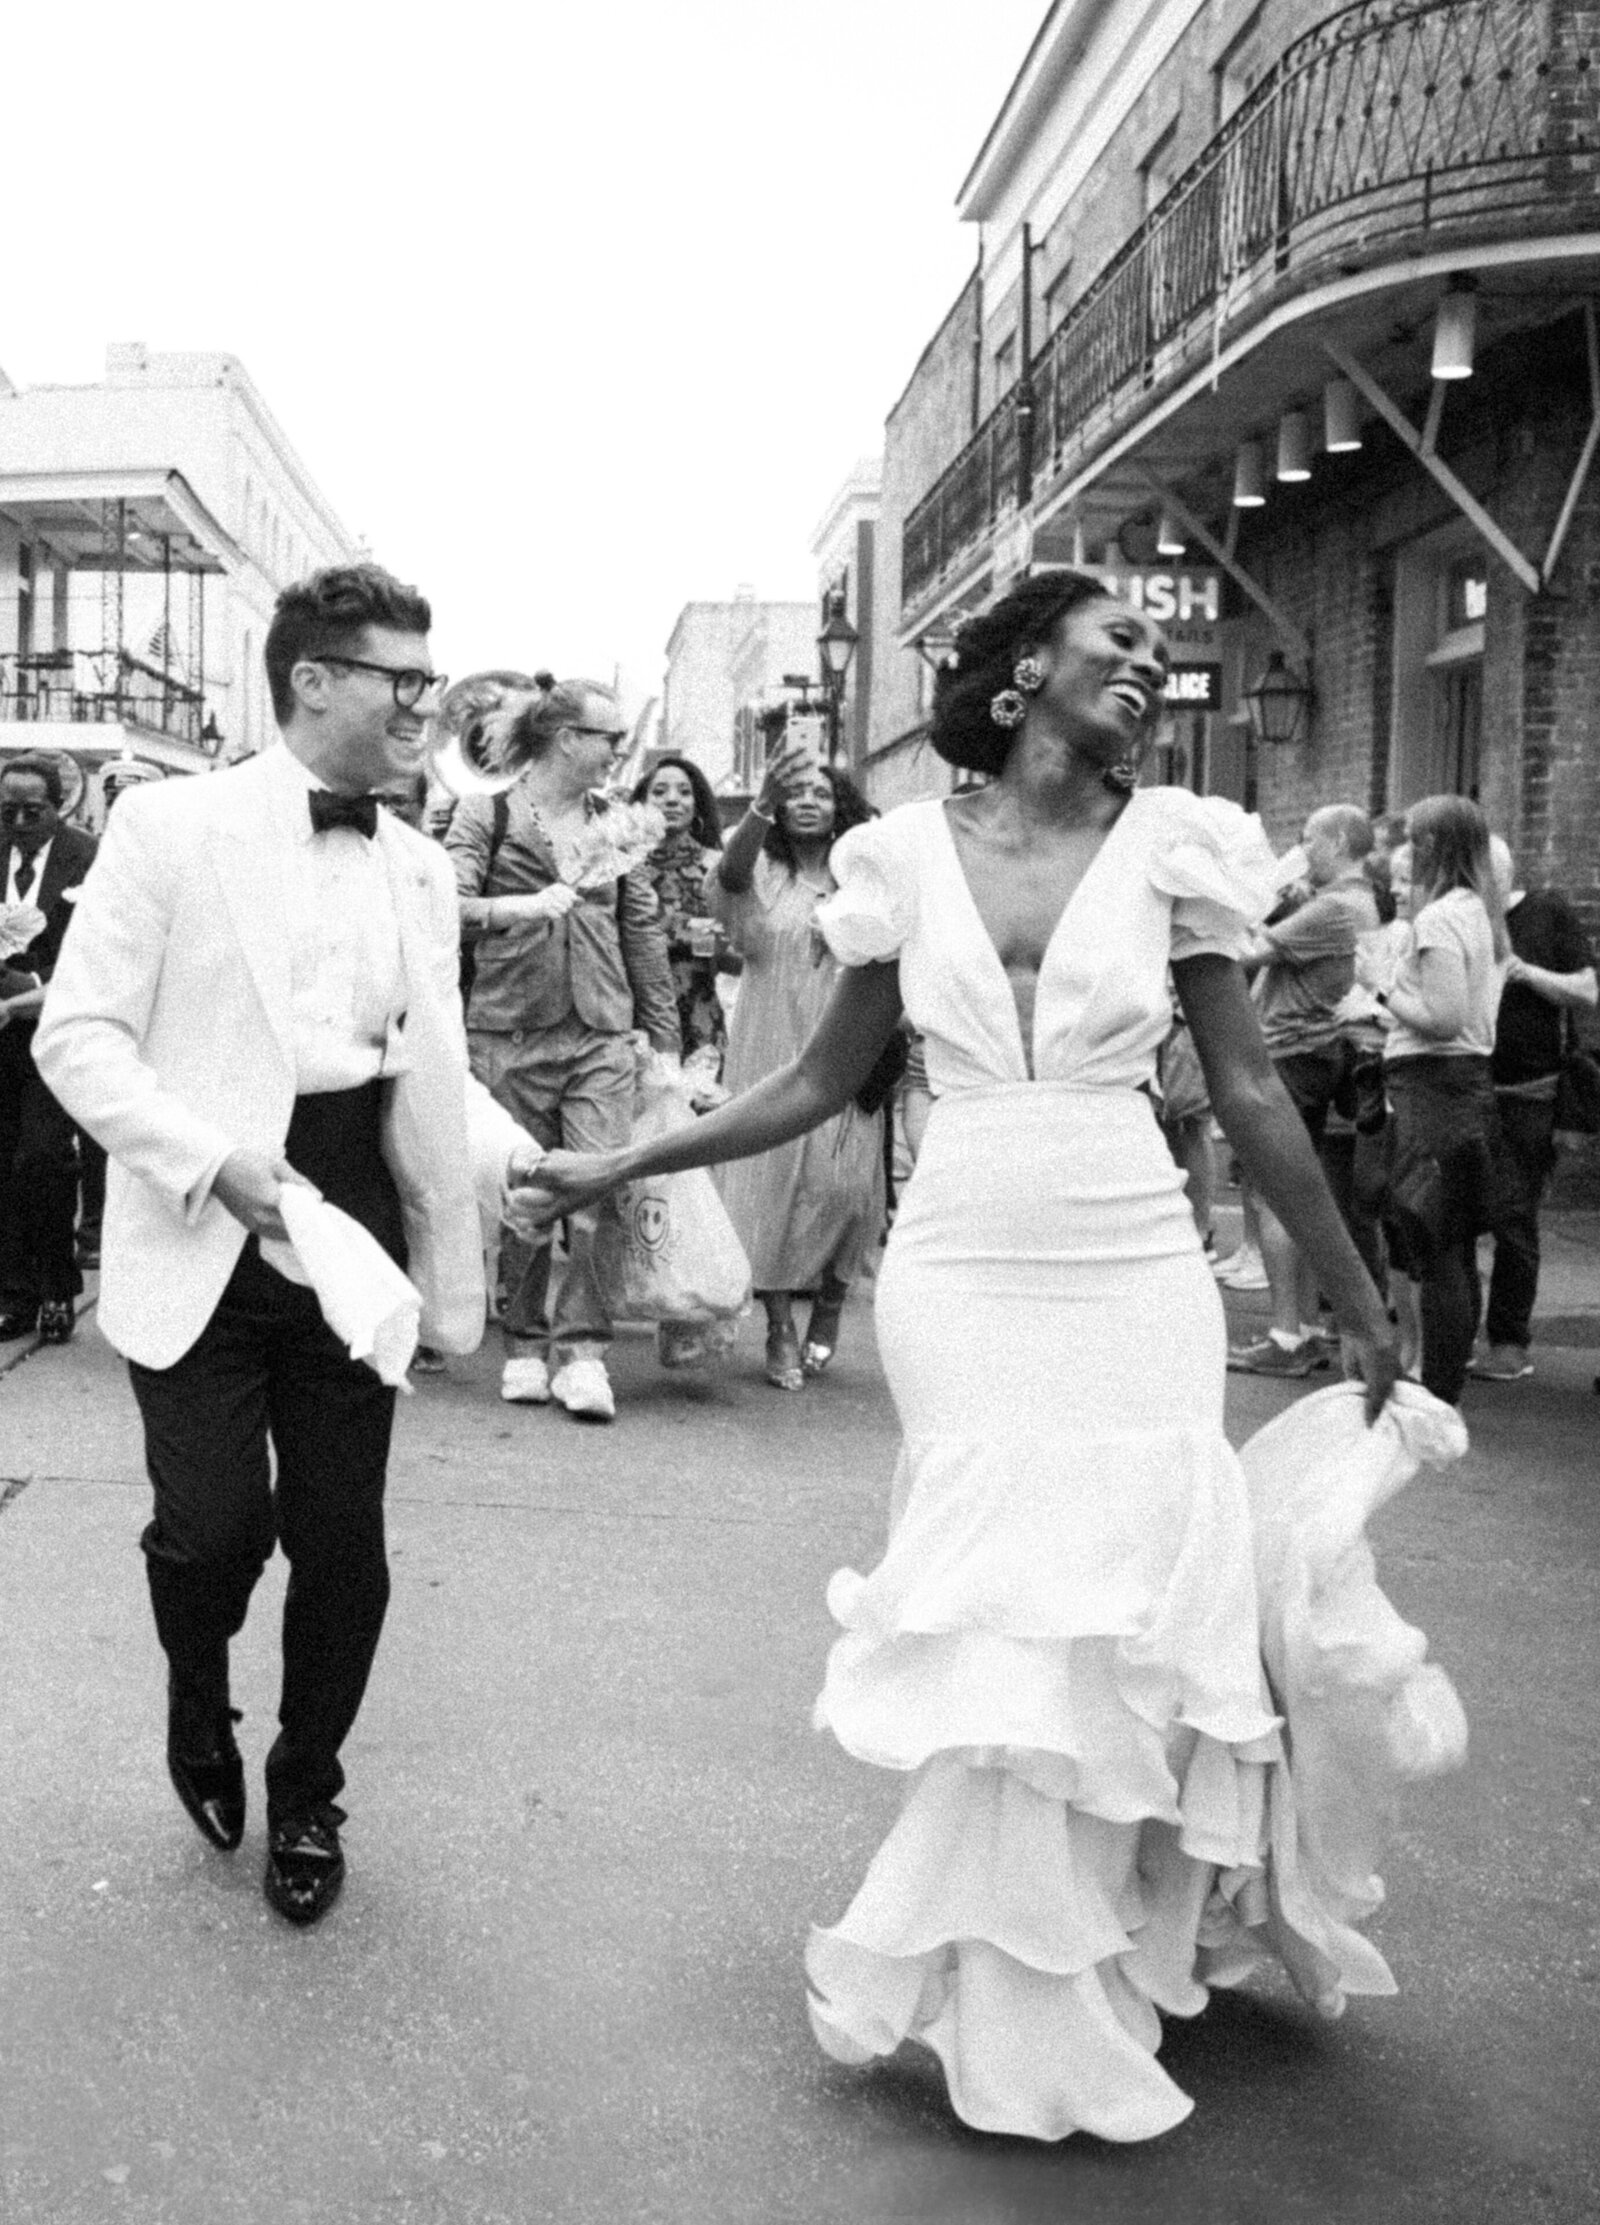 New Orleans second line wedding dress